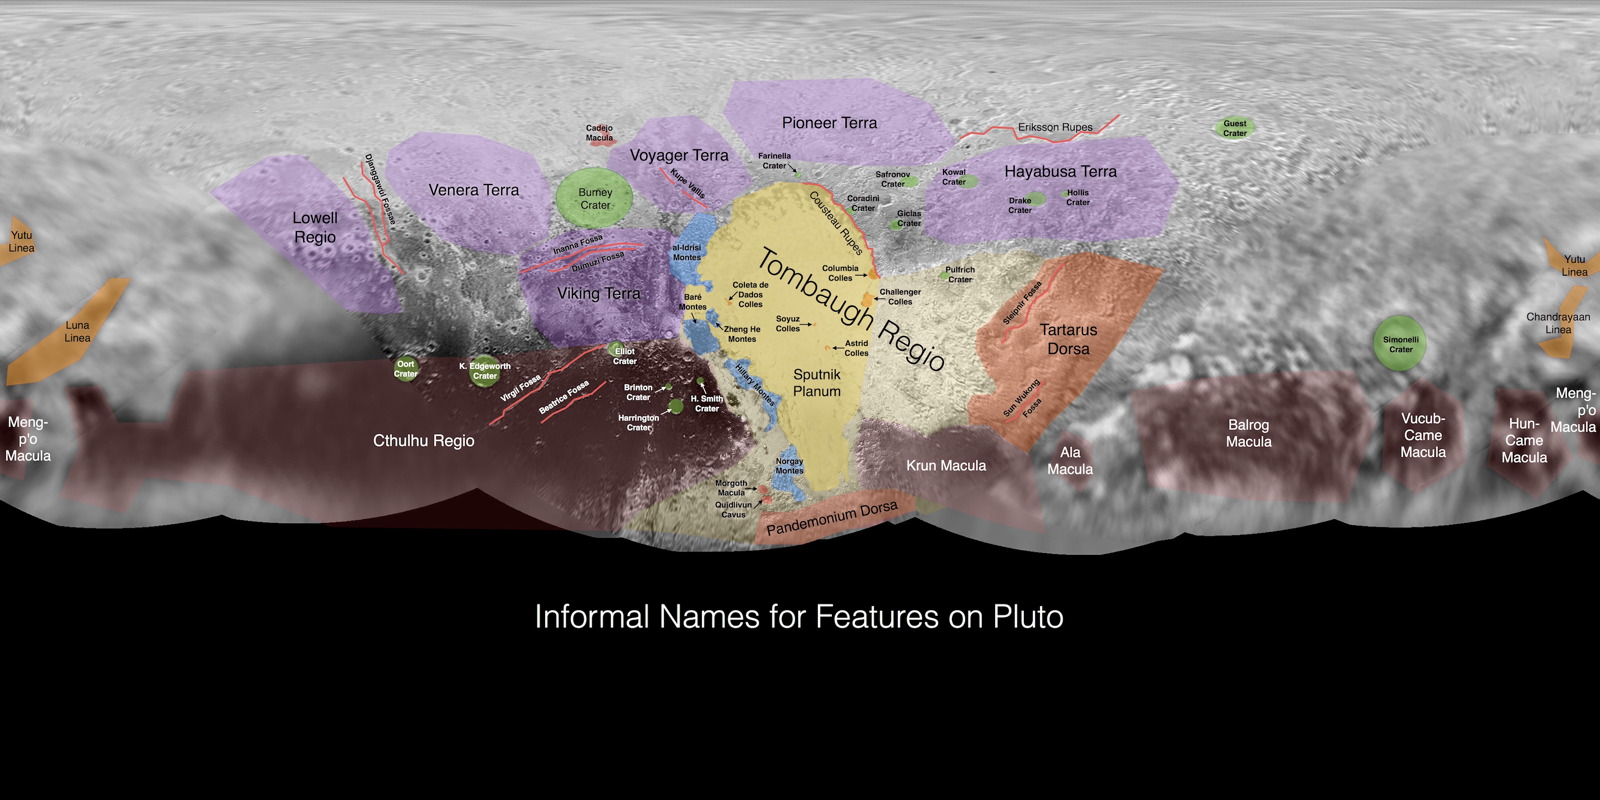 Informal Names for Features on Pluto